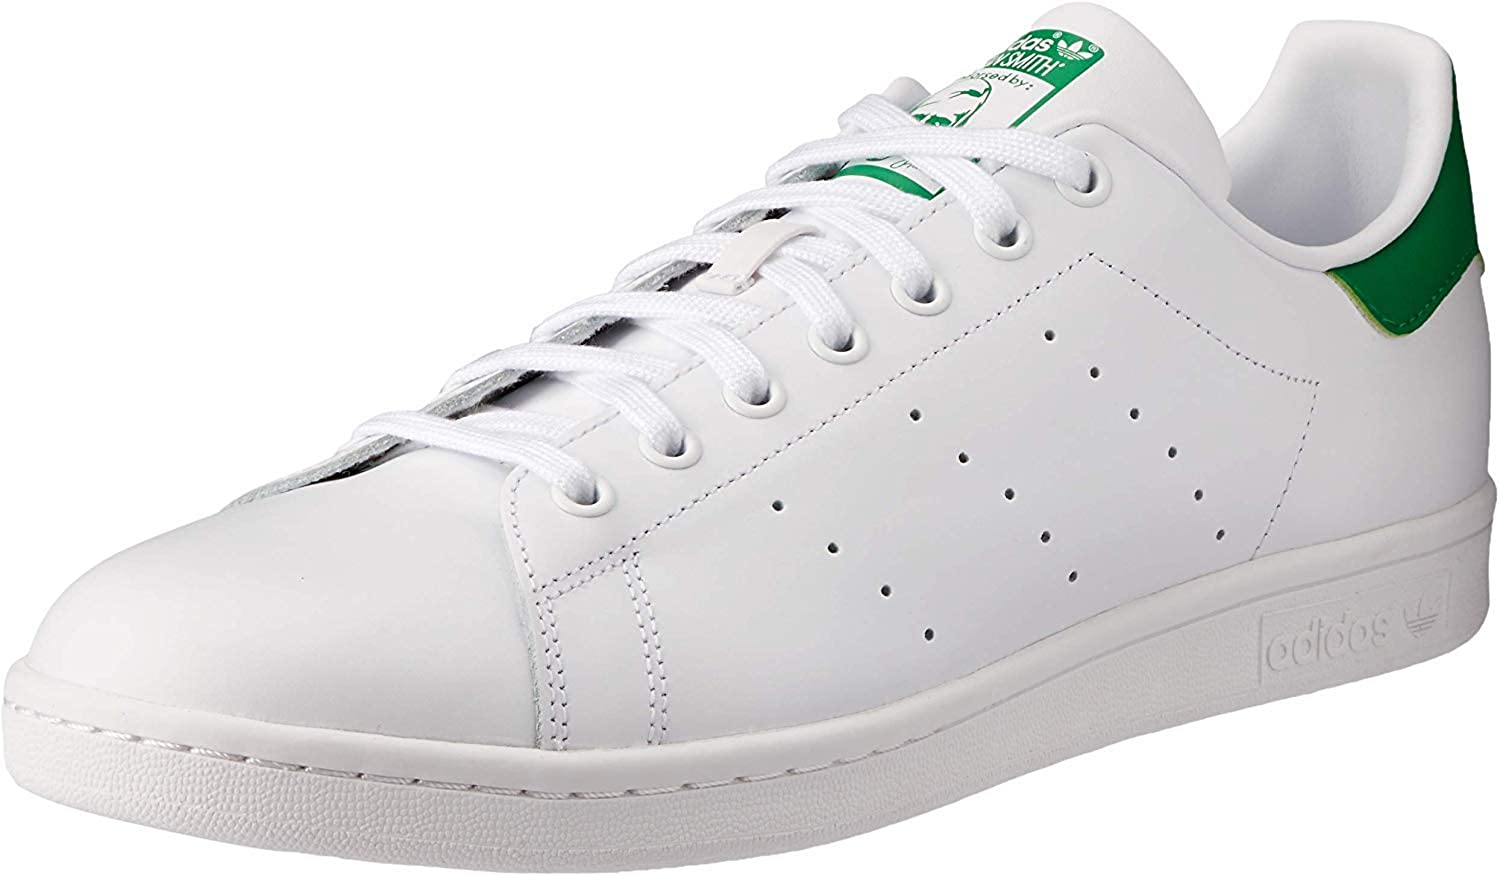 adidas Stan Smith M20324, Baskets Homme : Amazon.fr: Chaussures et ...